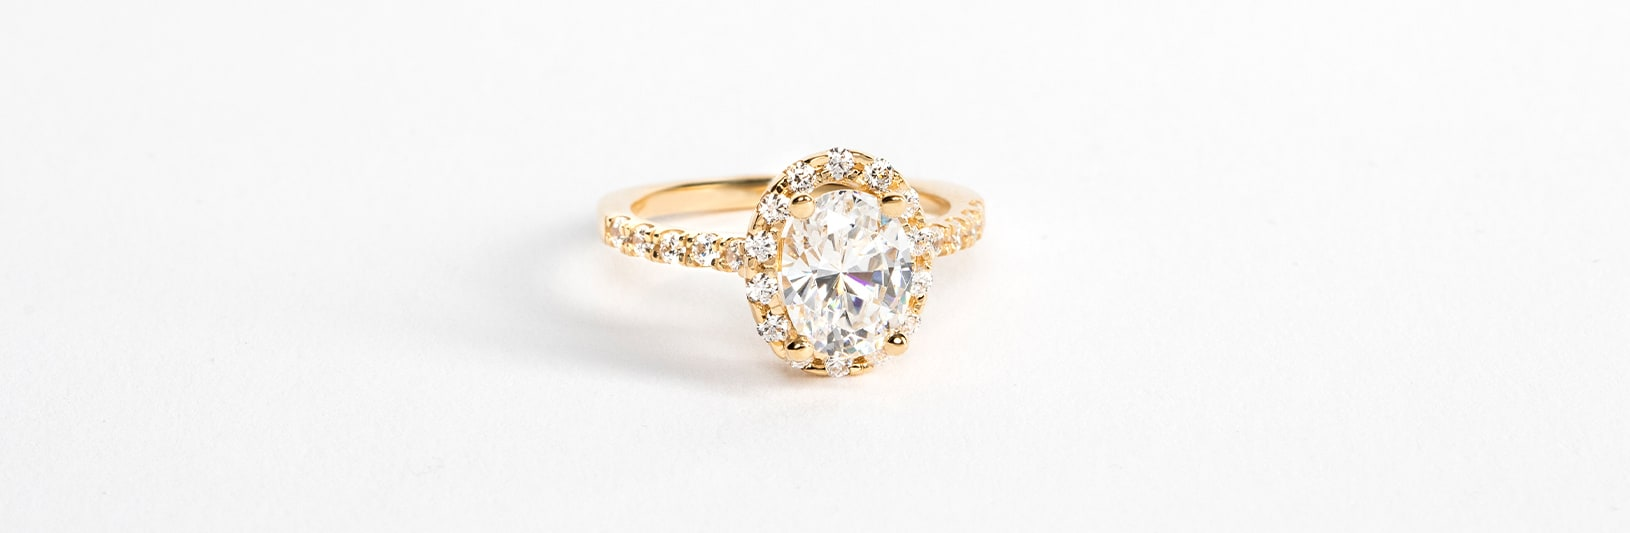 A classic oval cut simulated diamond in an accented setting